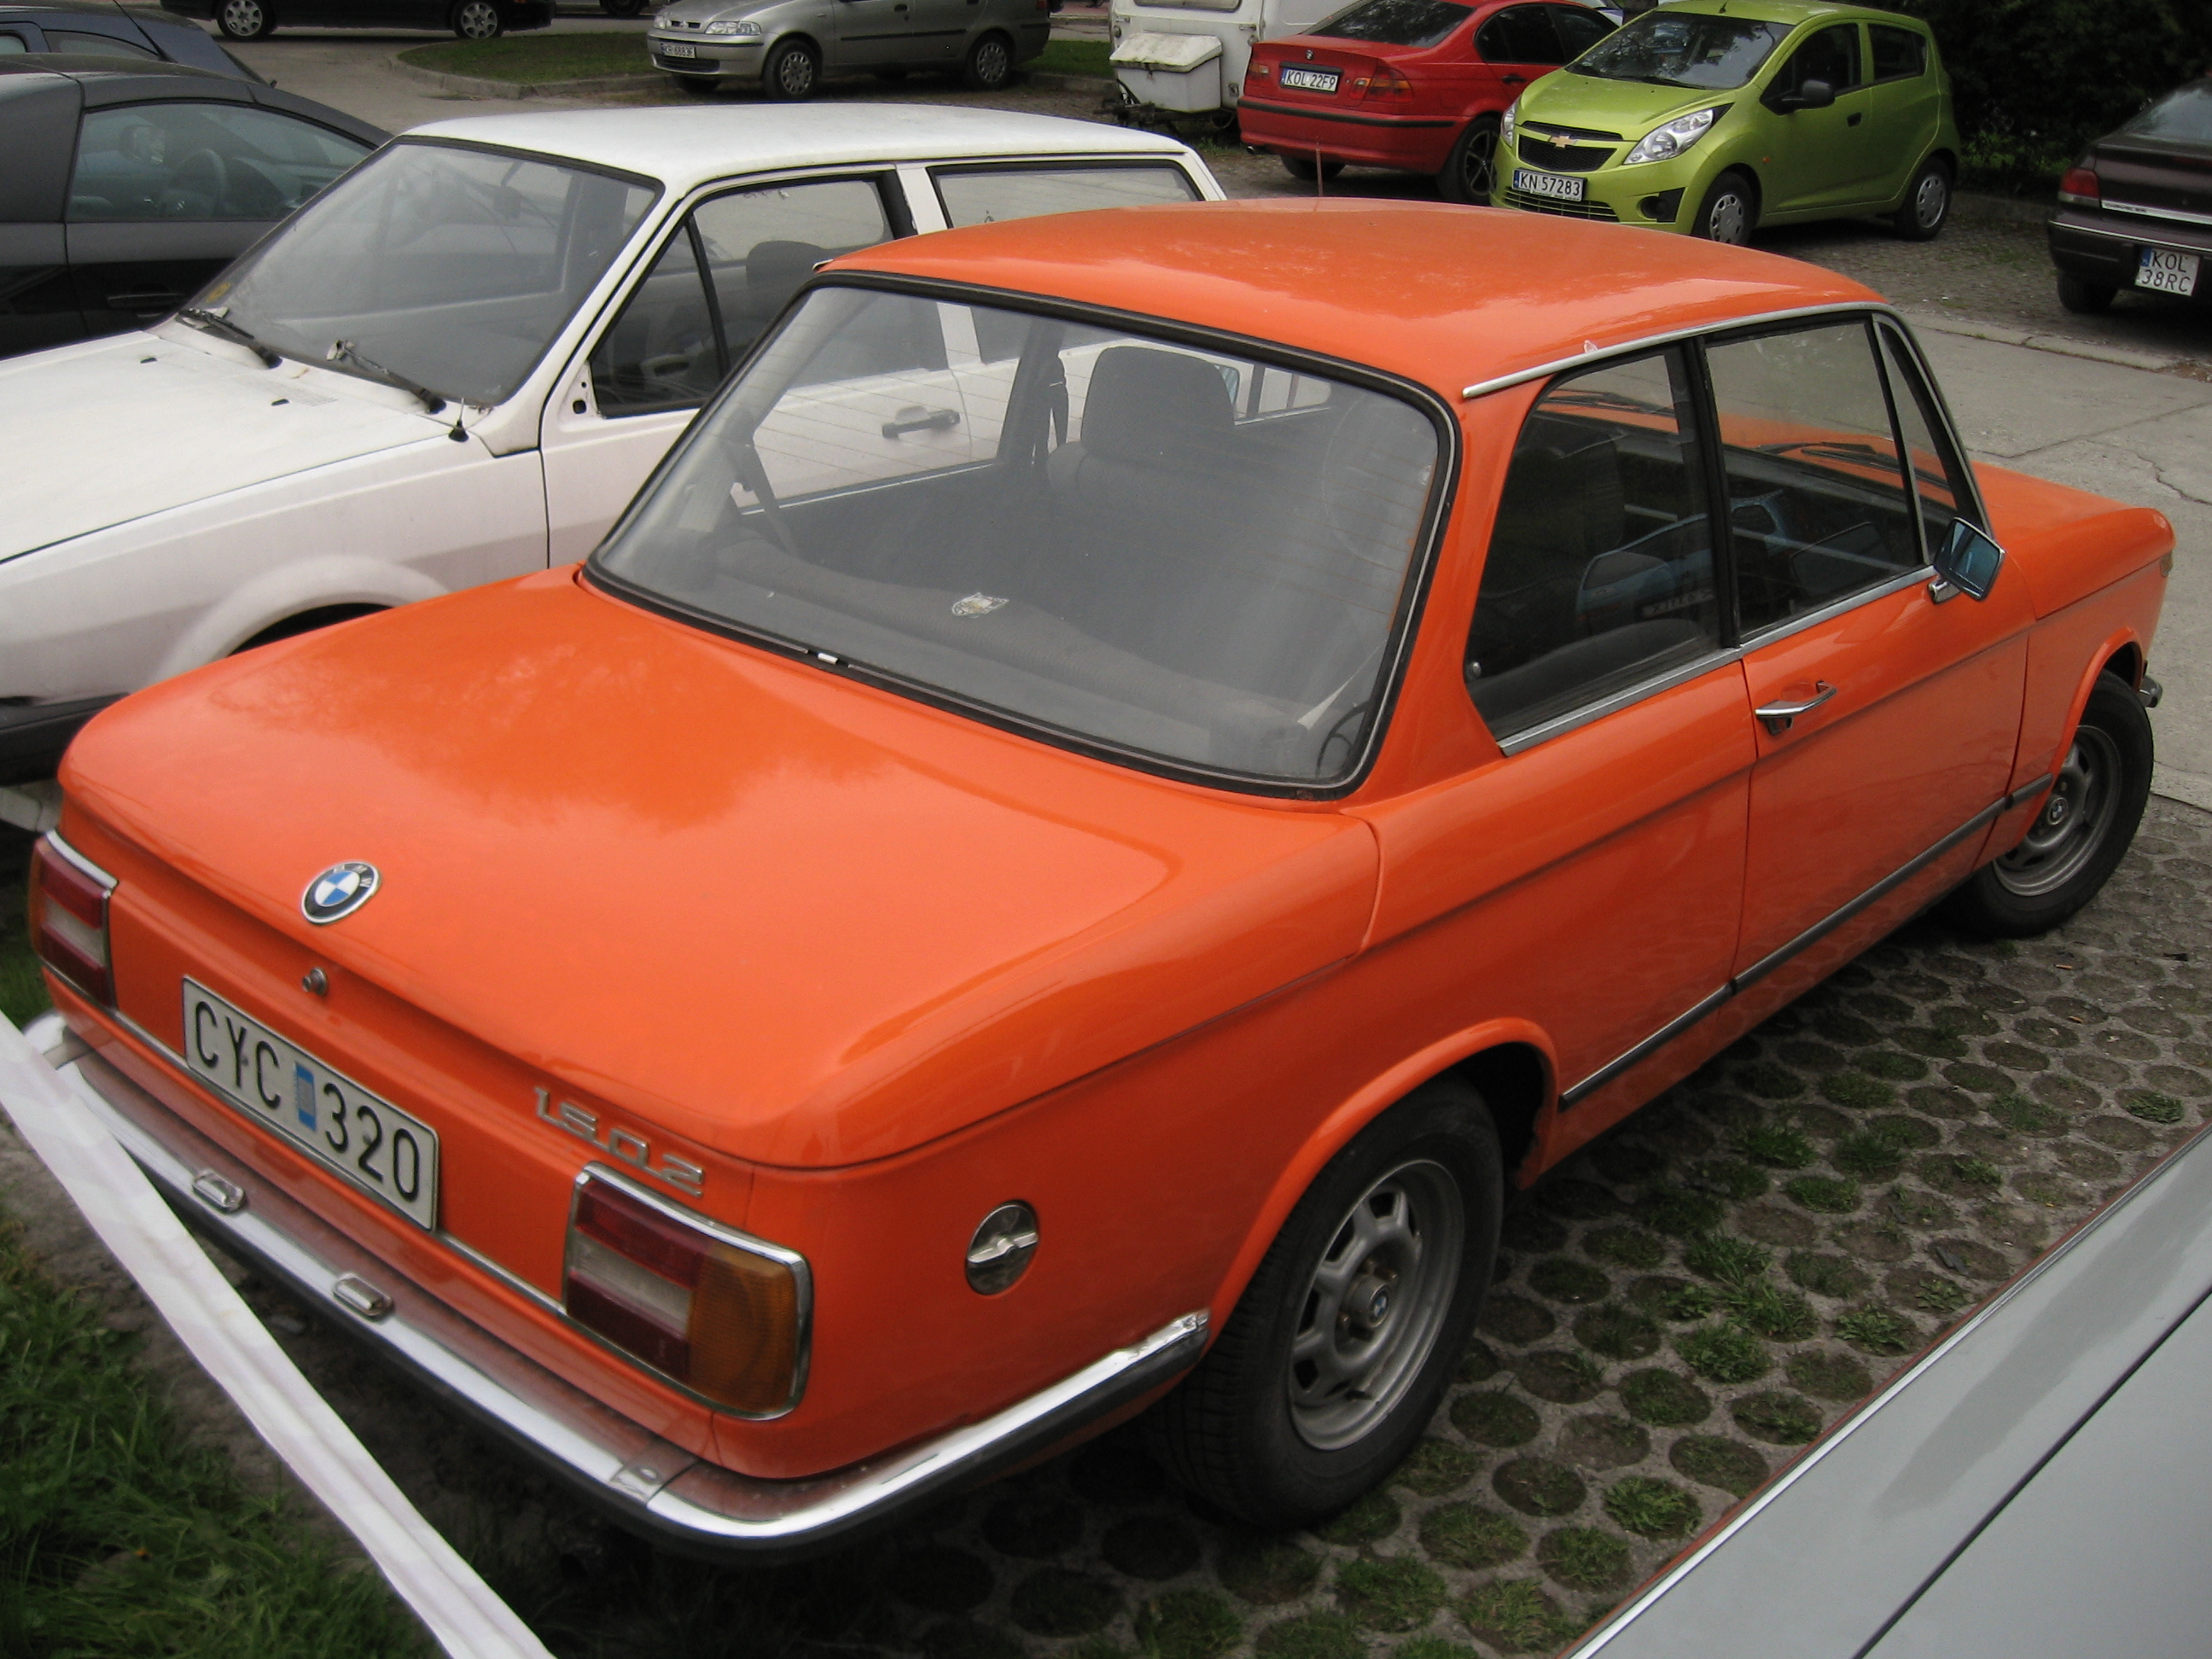 File:Orange BMW 1502 on a parking lot in Kraków (3).jpg